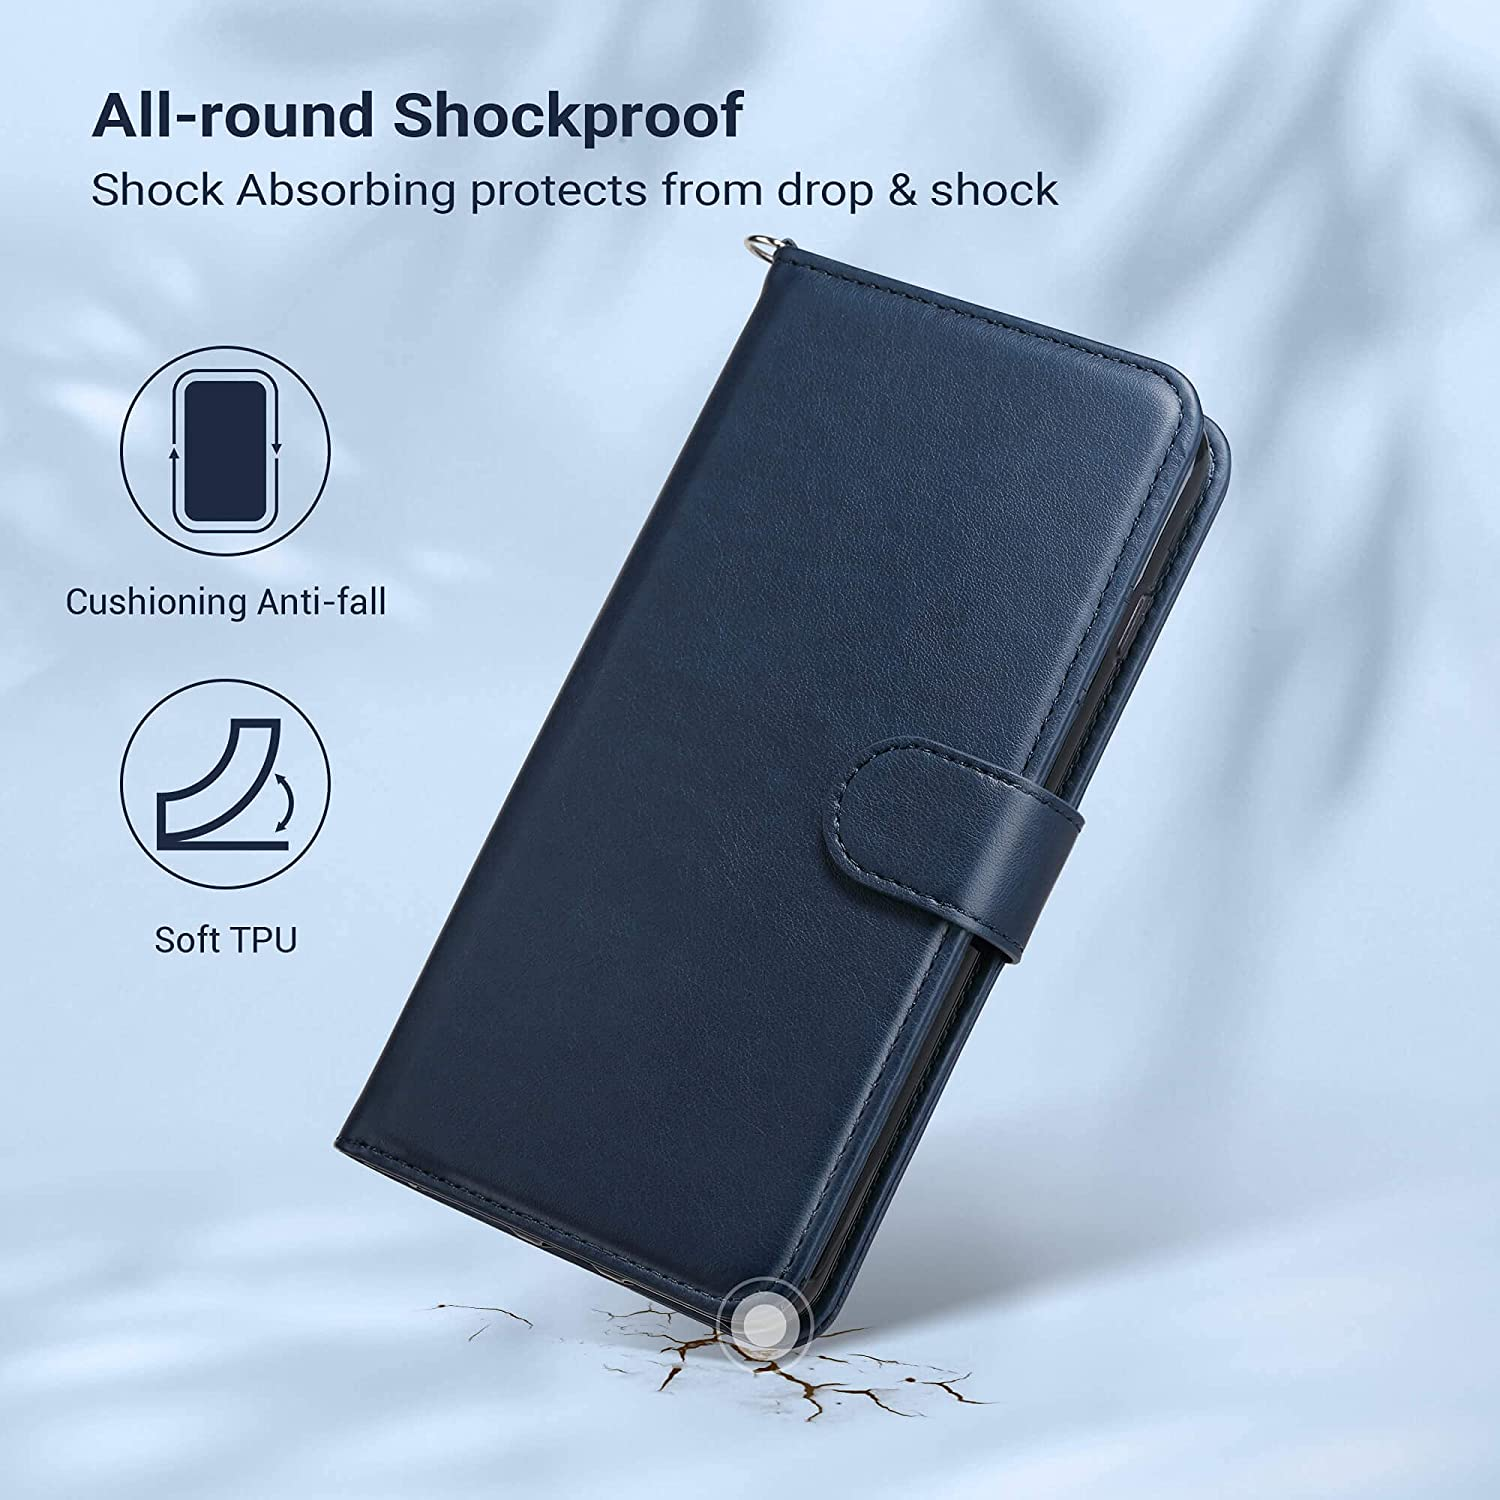 ULAK iPhone 8 Plus Case, iPhone 7 Plus Case, Premium PU Leather Wallet Case with Card Holders Kickstand Hand Strap Shockproof Protective Cover for iPhone 7 Plus/8 Plus 5.5 Inch (Blue)